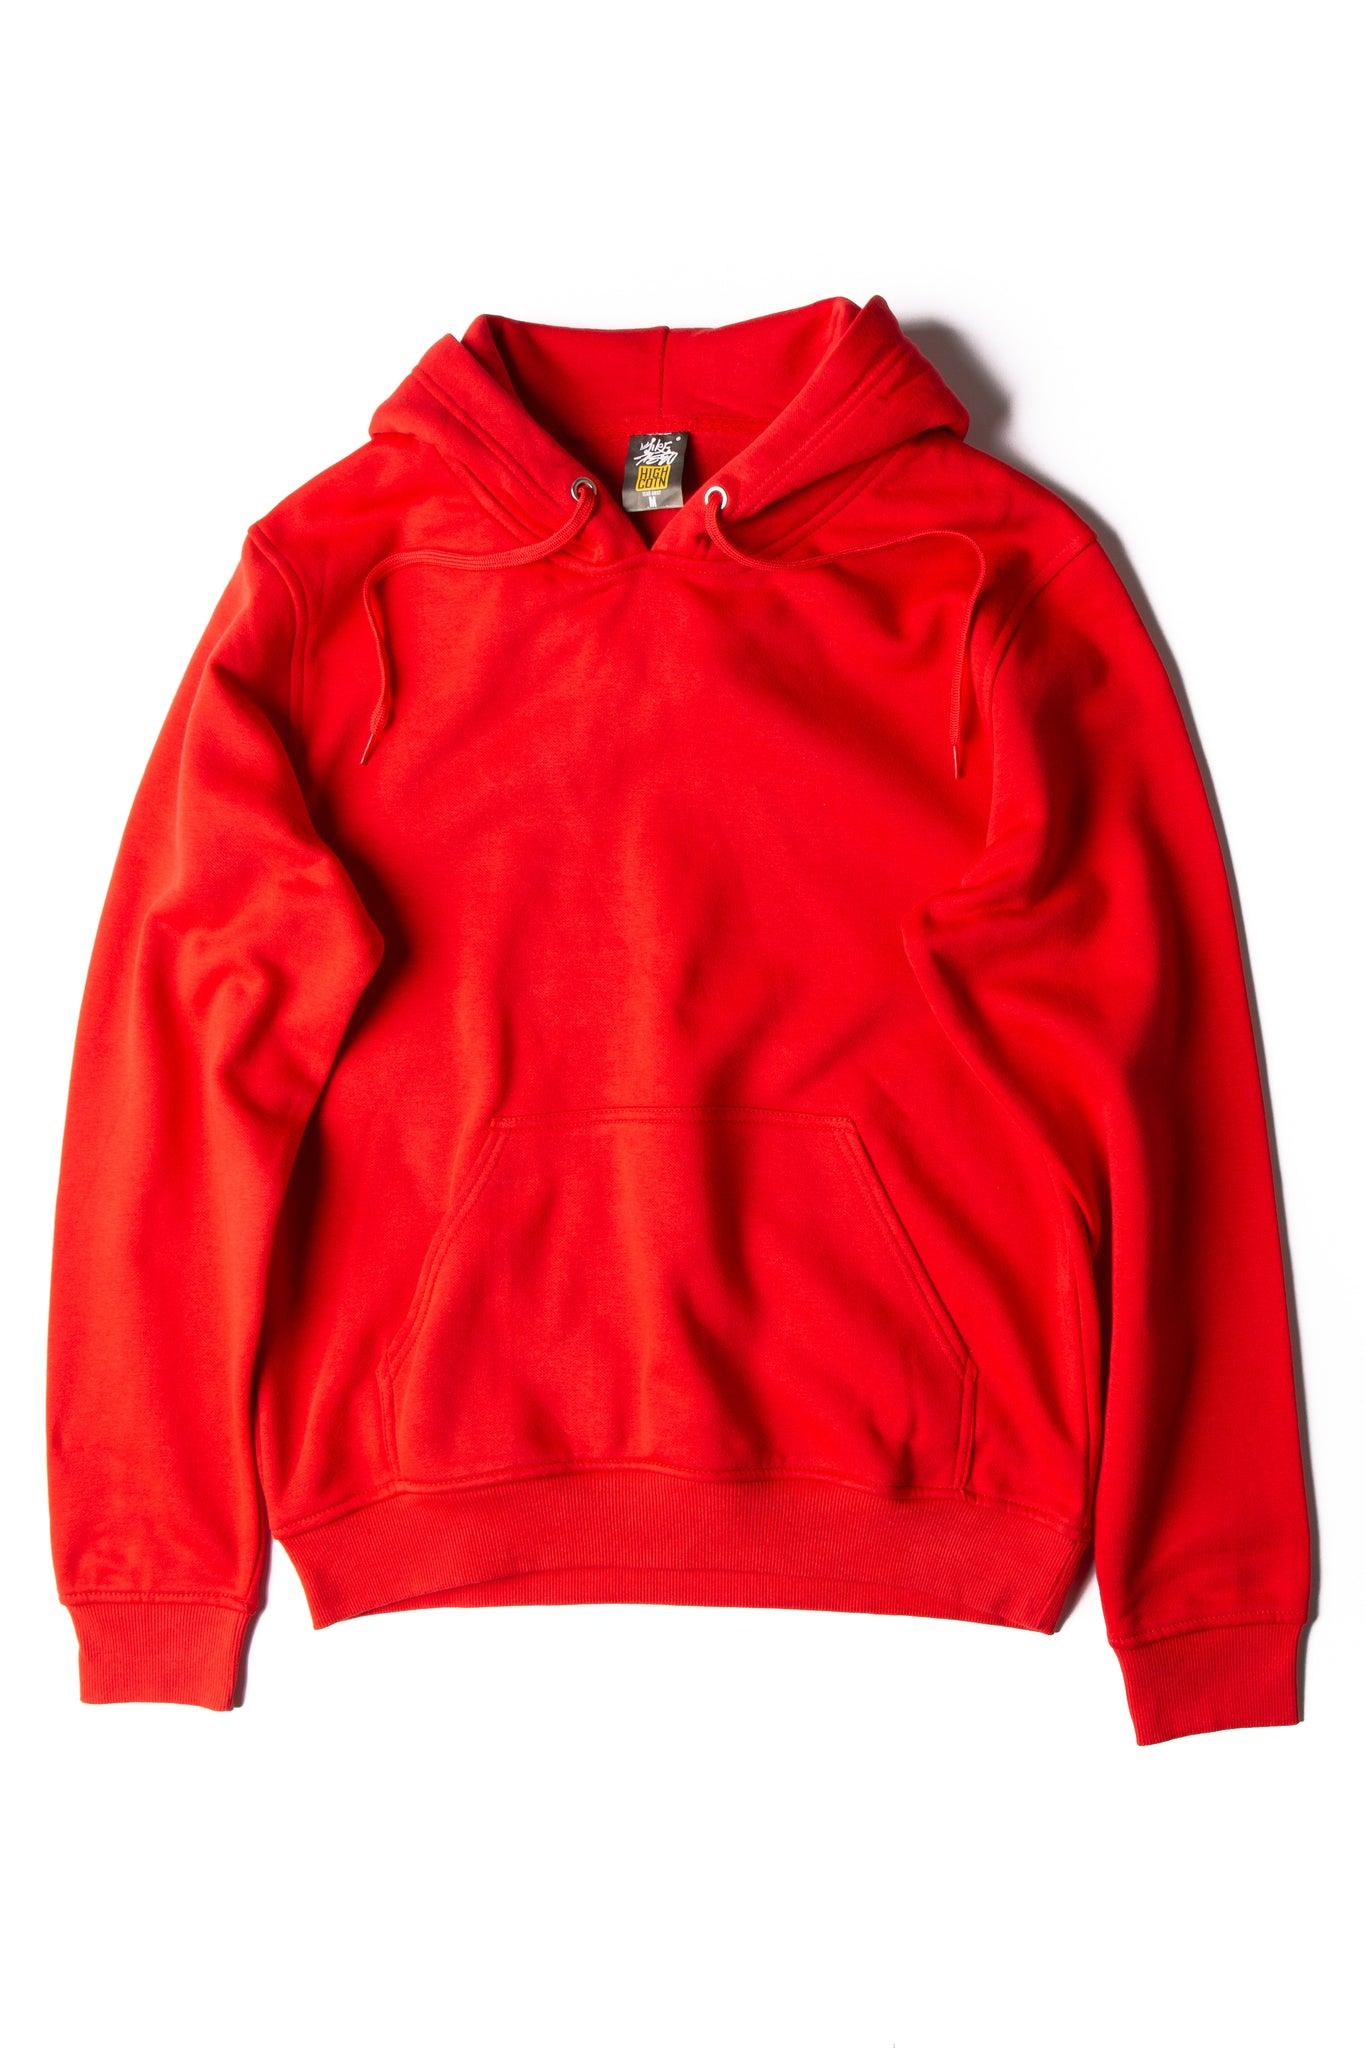 af0da491c451d Wholesale Blank Red Hoodies